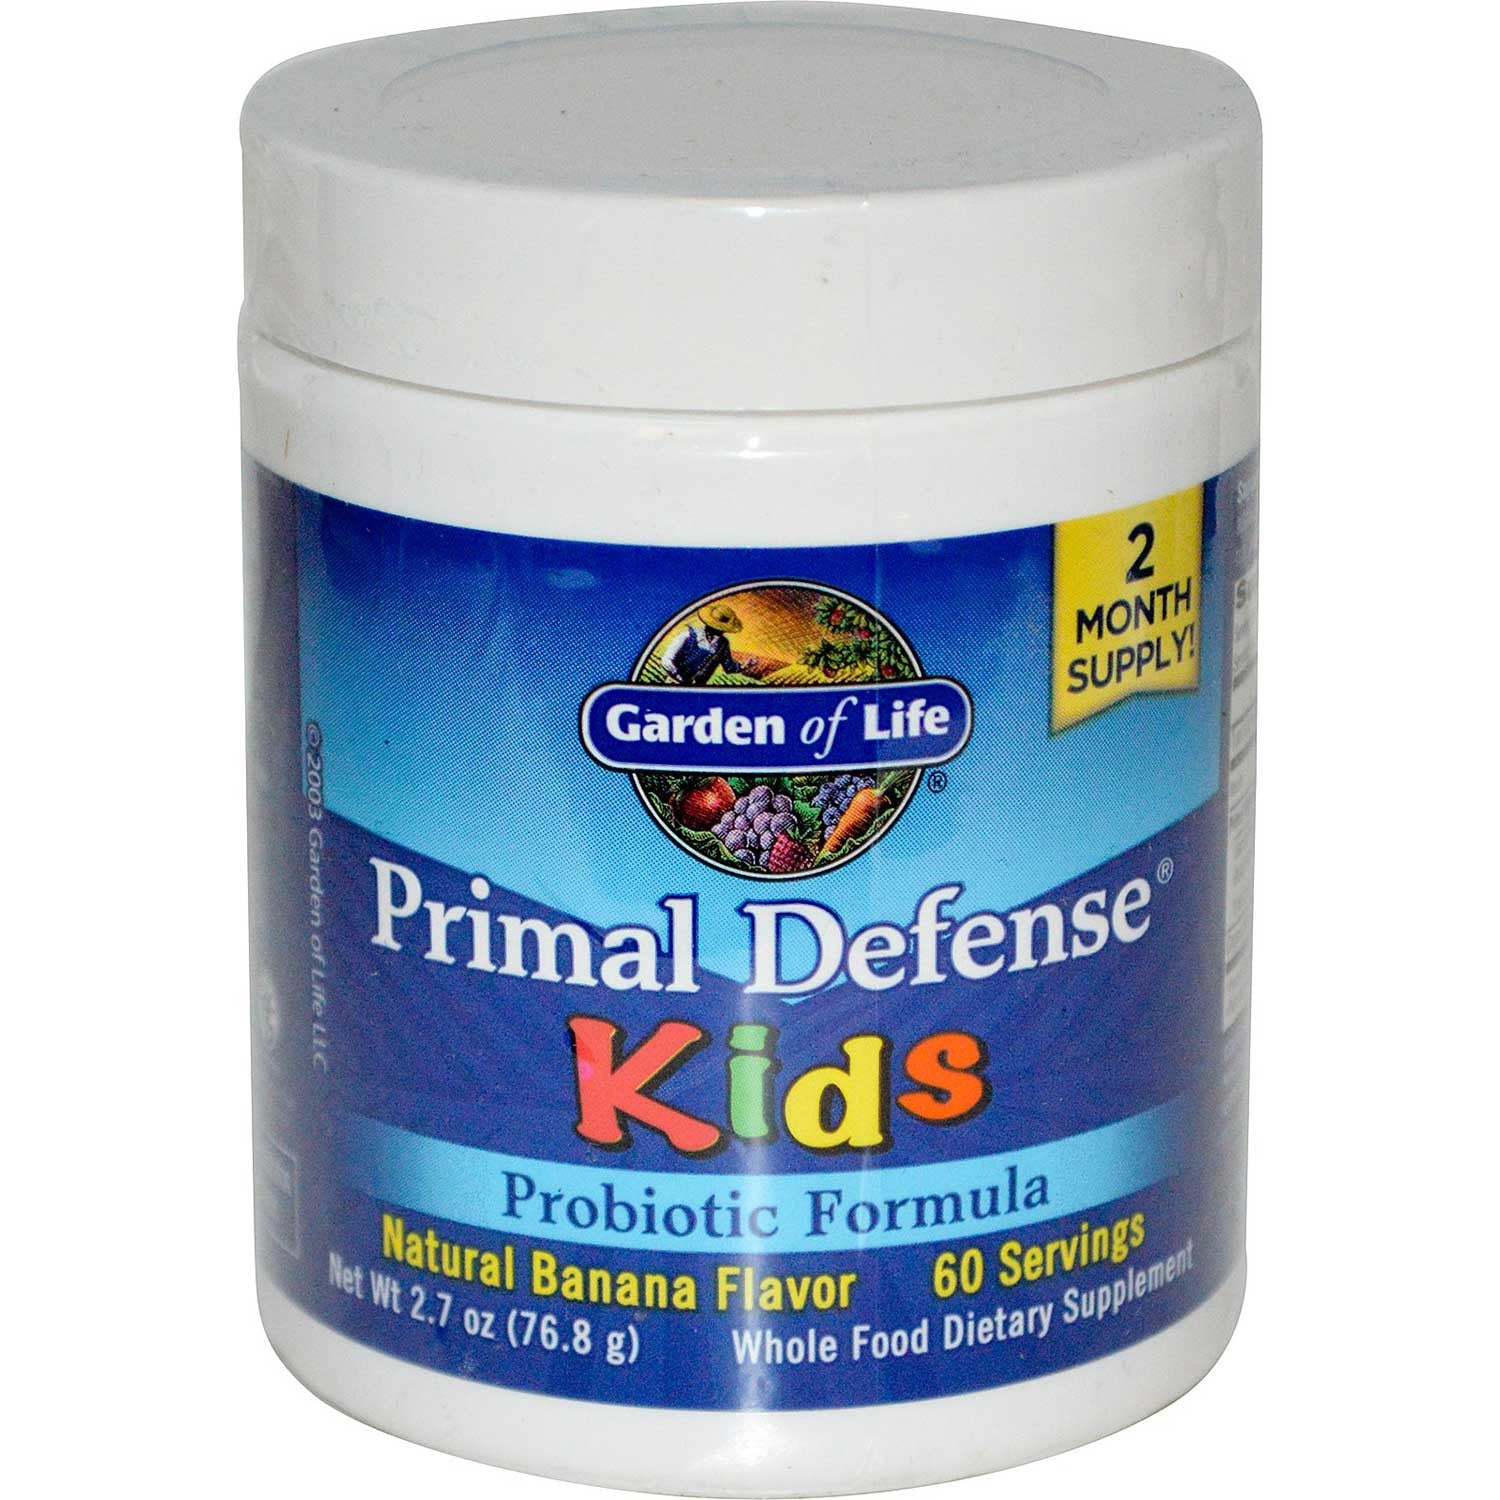 Garden of Life Primal Defense Kids, 76.8 g.-NaturesWisdom